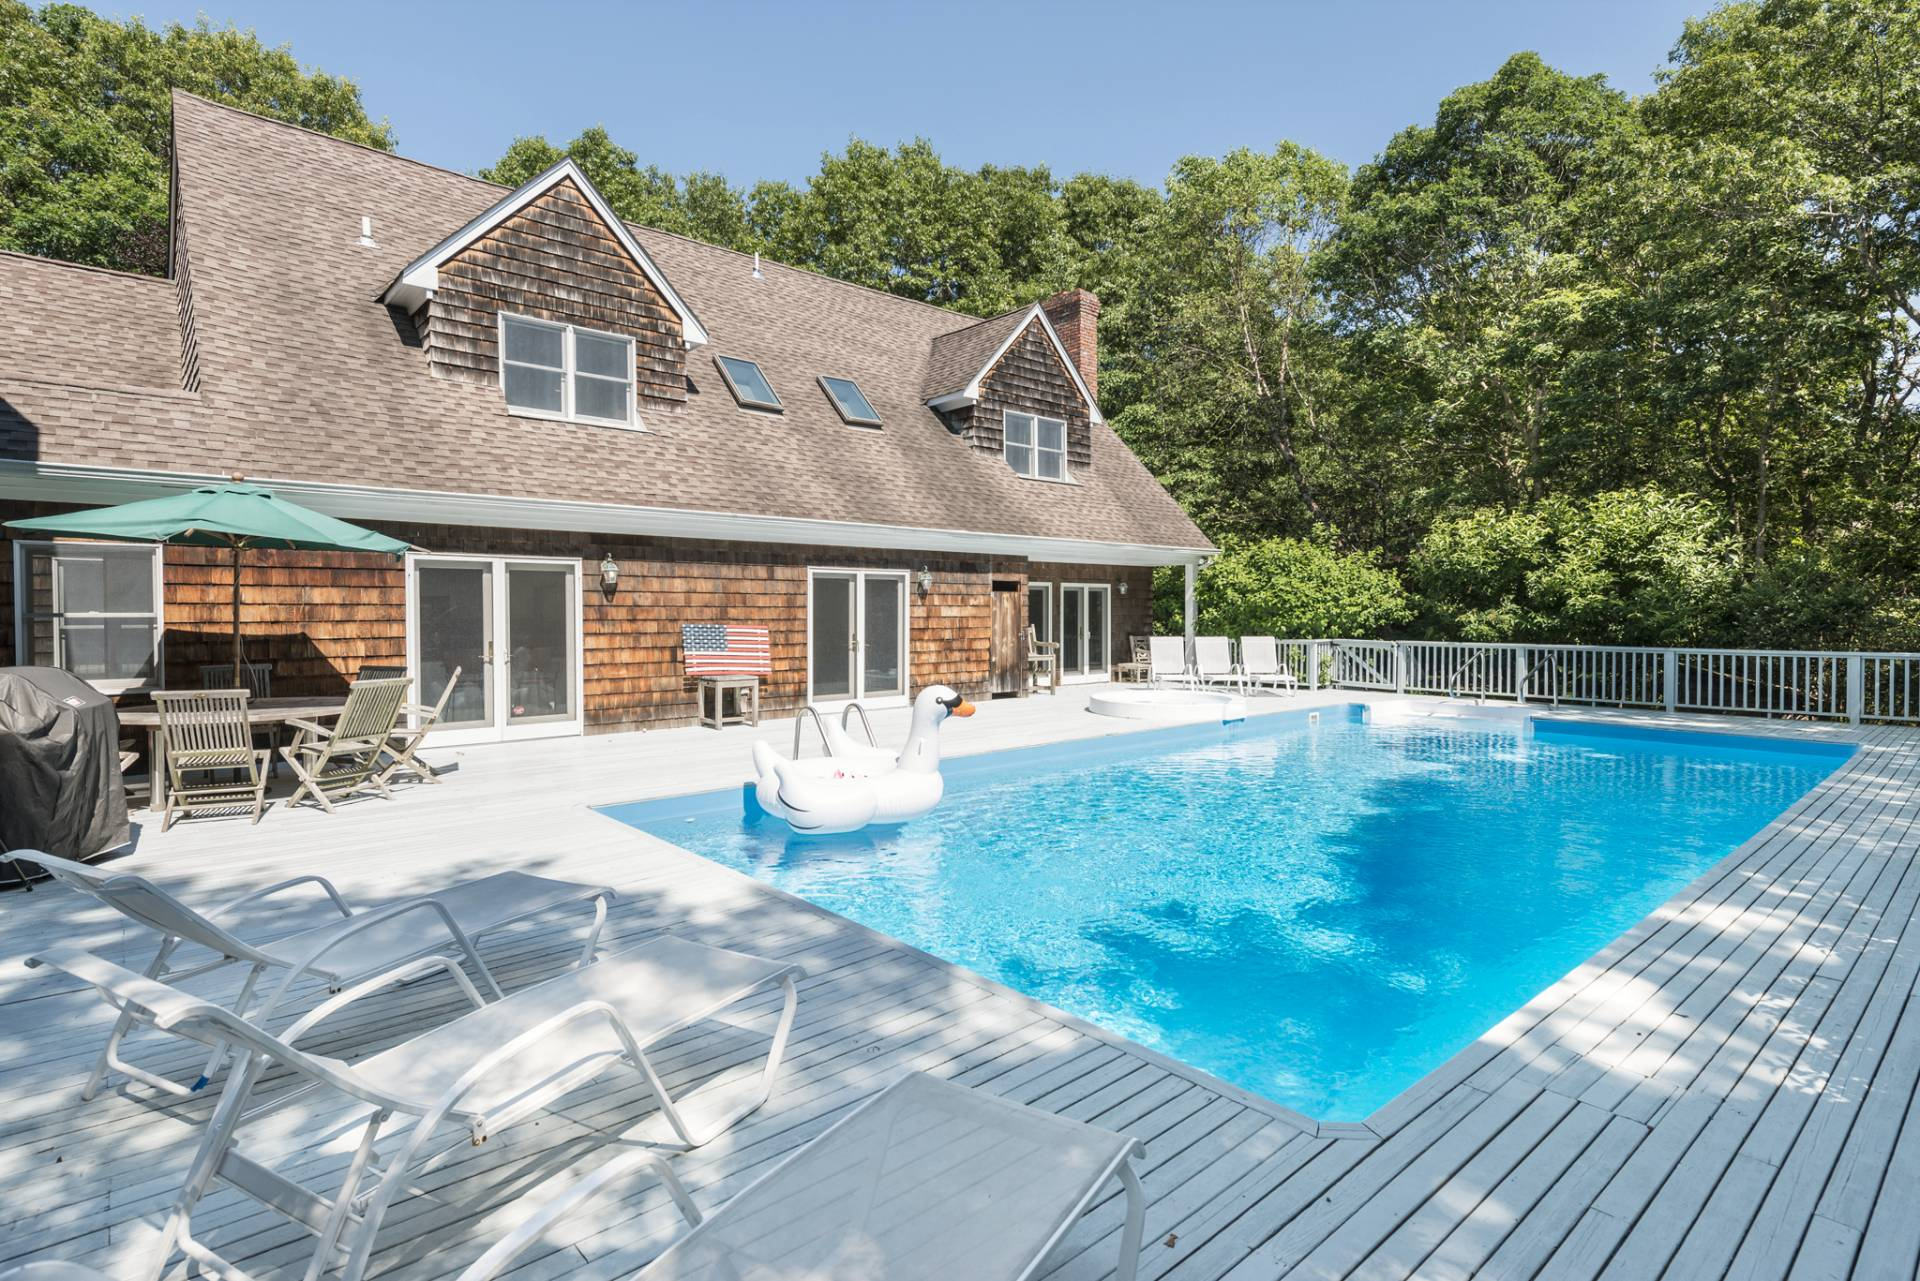 Single Family Home for Sale at Newly Listed Wainscott South! 73 Wainscott Northwest Road, Wainscott, New York